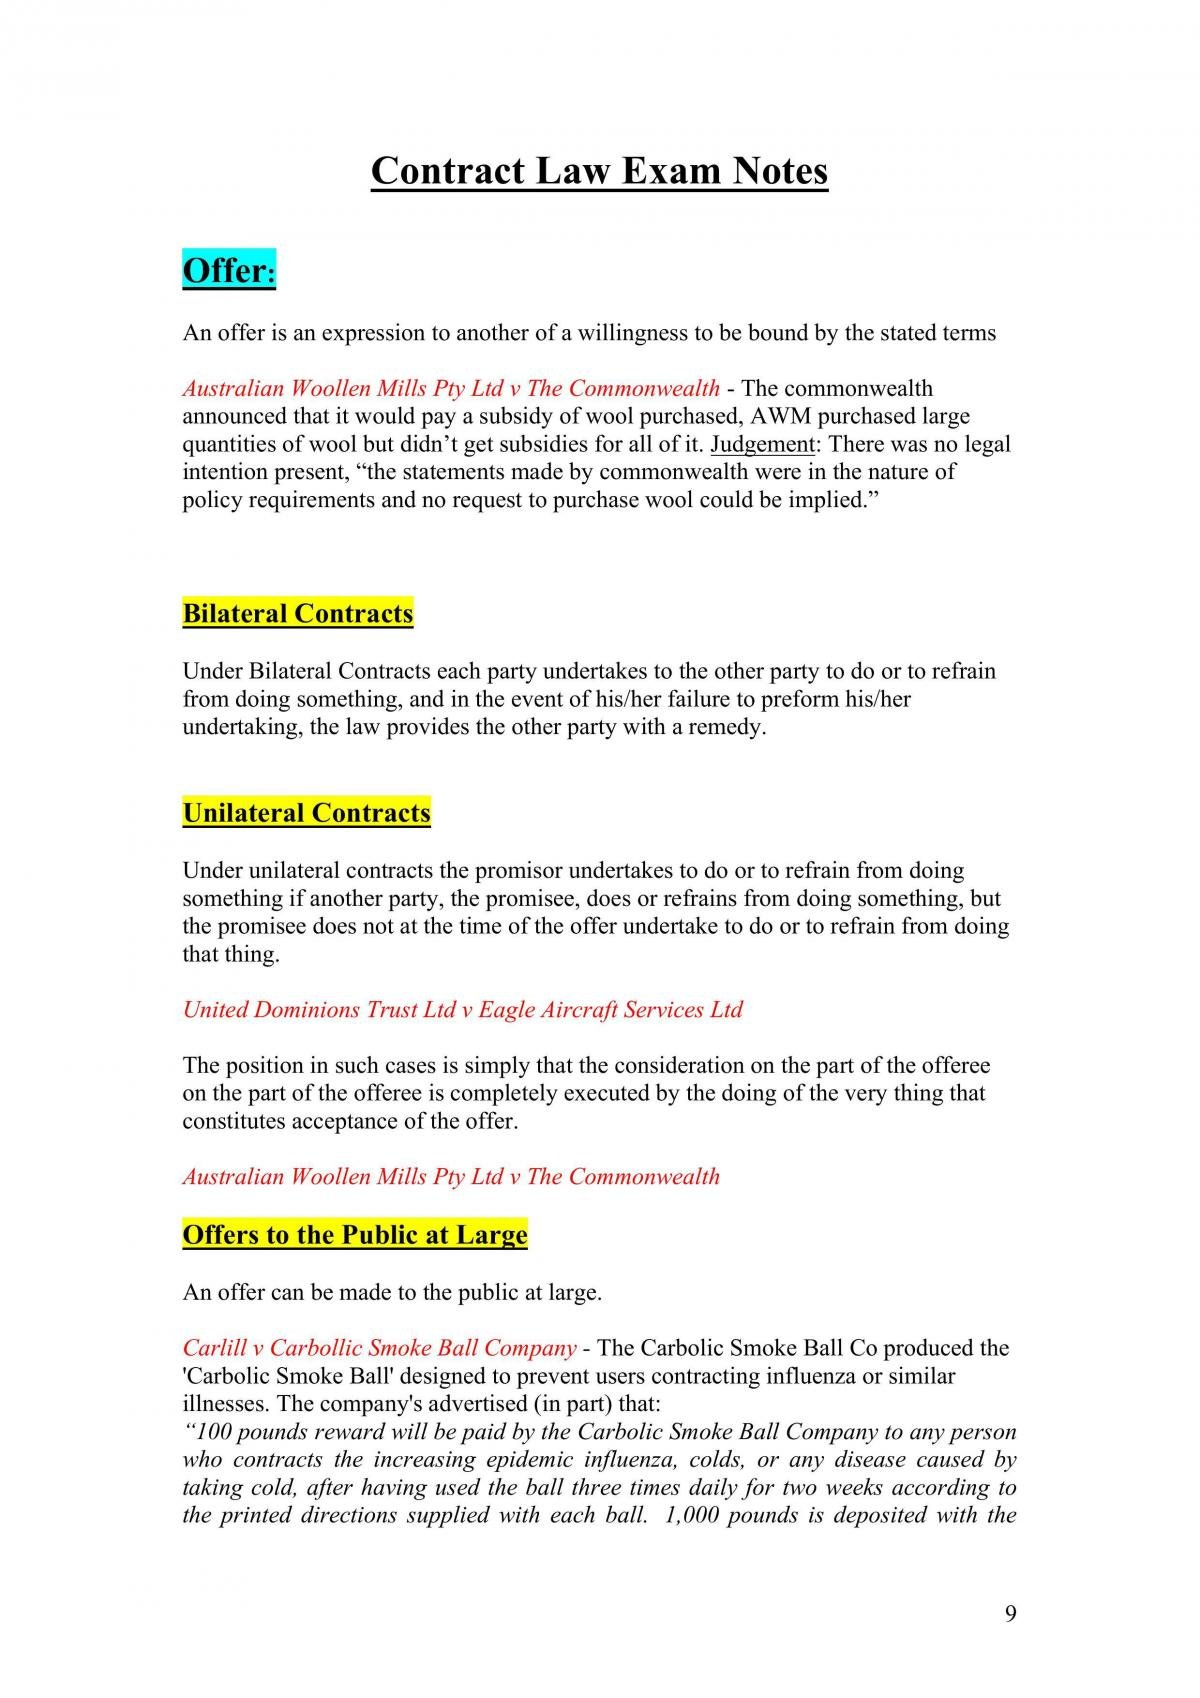 Complete Contracts Notes  - Page 9